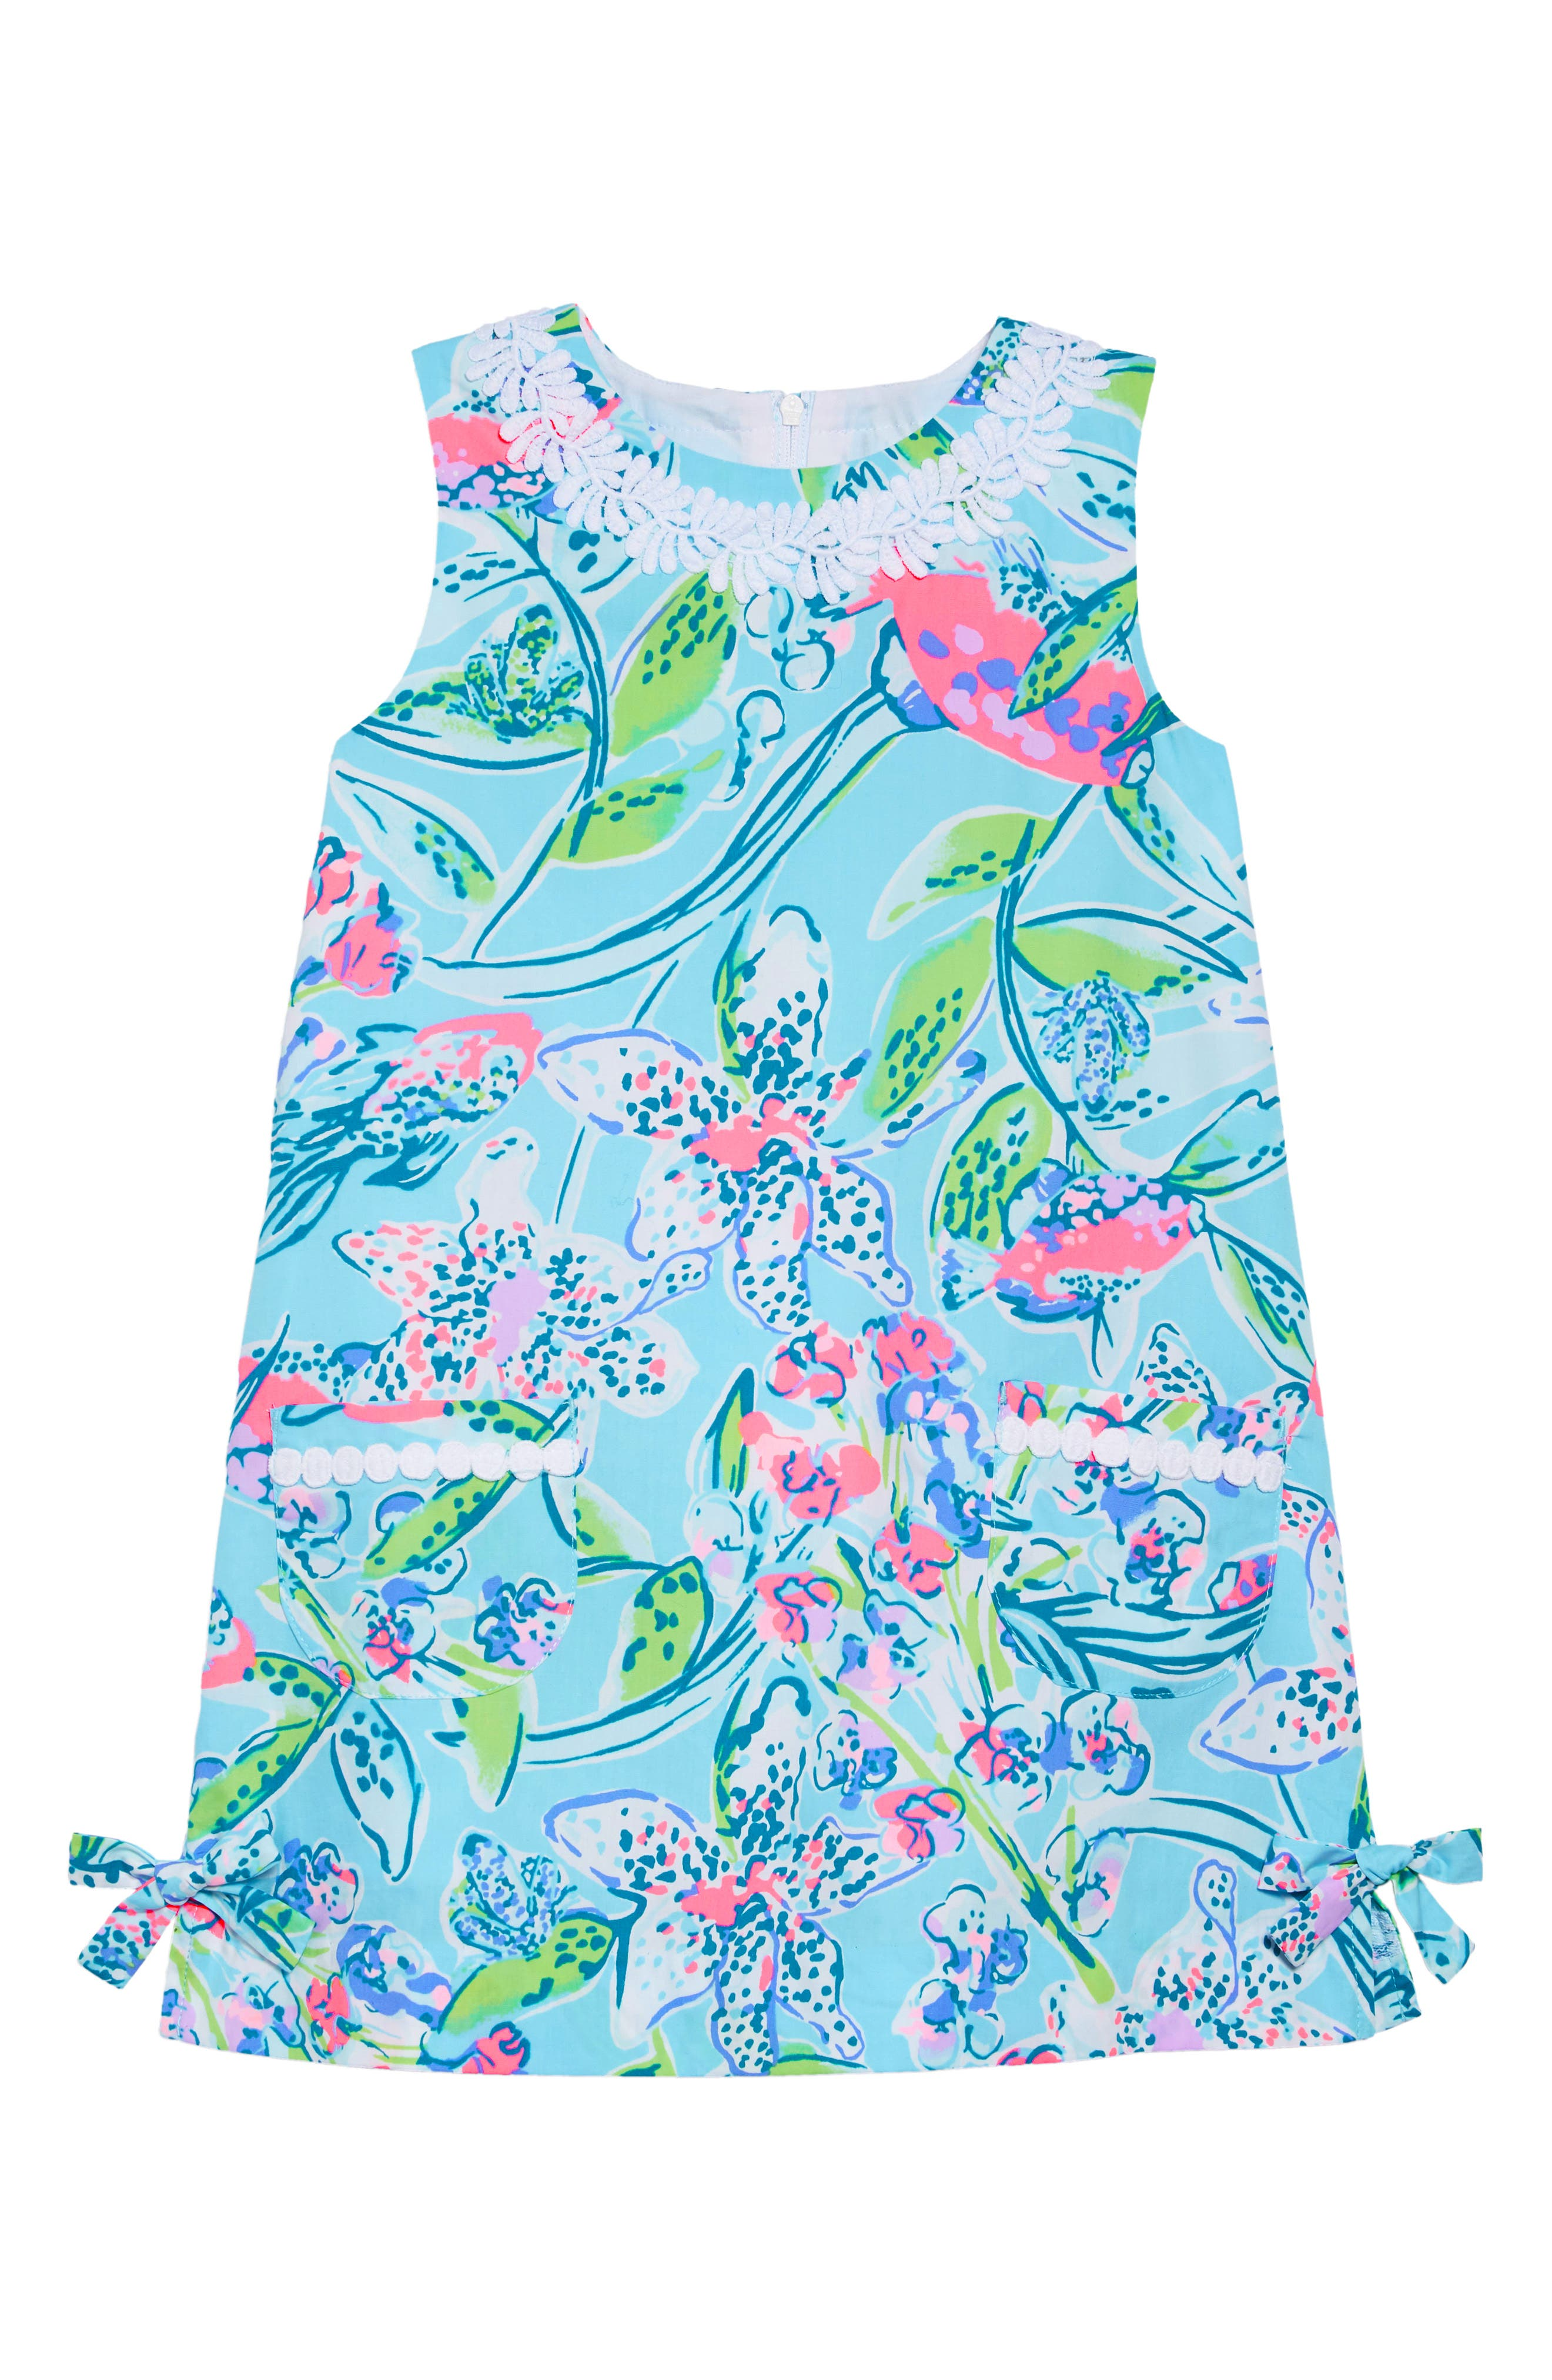 LILLY PULITZER<SUP>®</SUP>, Little Lilly Classic Shift Dress, Main thumbnail 1, color, BALI BLUE SWAY THIS WAY